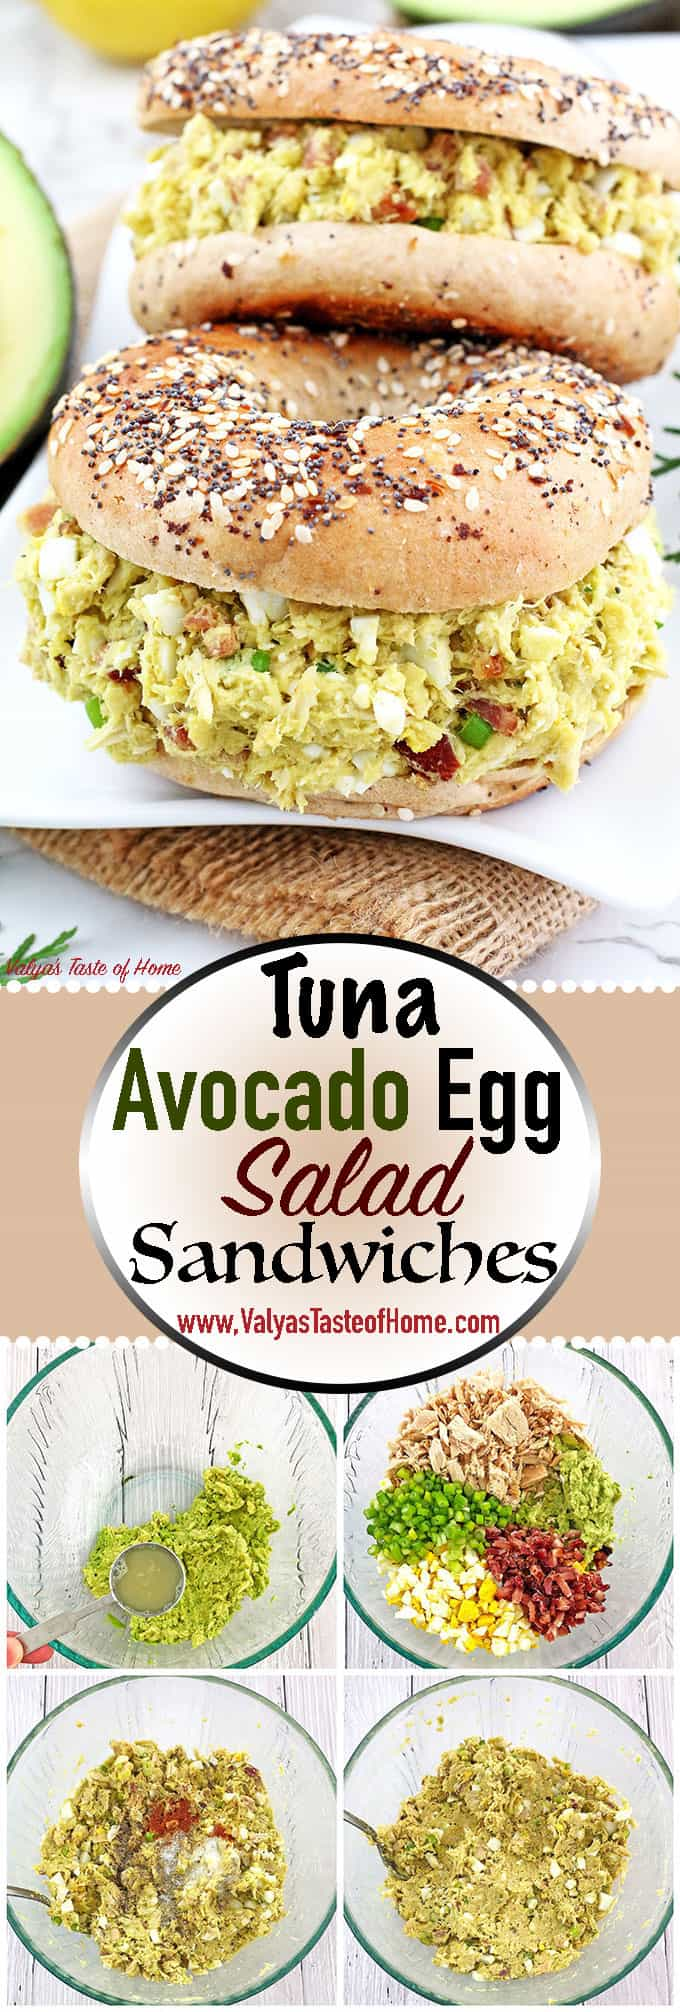 These Tuna Avocado Egg Salad Sandwiches are quick to put together, make-ahead recipe that is perfect for lunch, snack or lunch boxes. They are very filling, healthy, and full of nutrients, vitamins, and protein that will keep you full for a while. Tuna Avocado Egg Lettuce wraps. Also, top crackers of your choice and serve as appetizers. Spread this salad on wheat or flour tortilla and serve as tortilla rolls. The possibilities are endless.